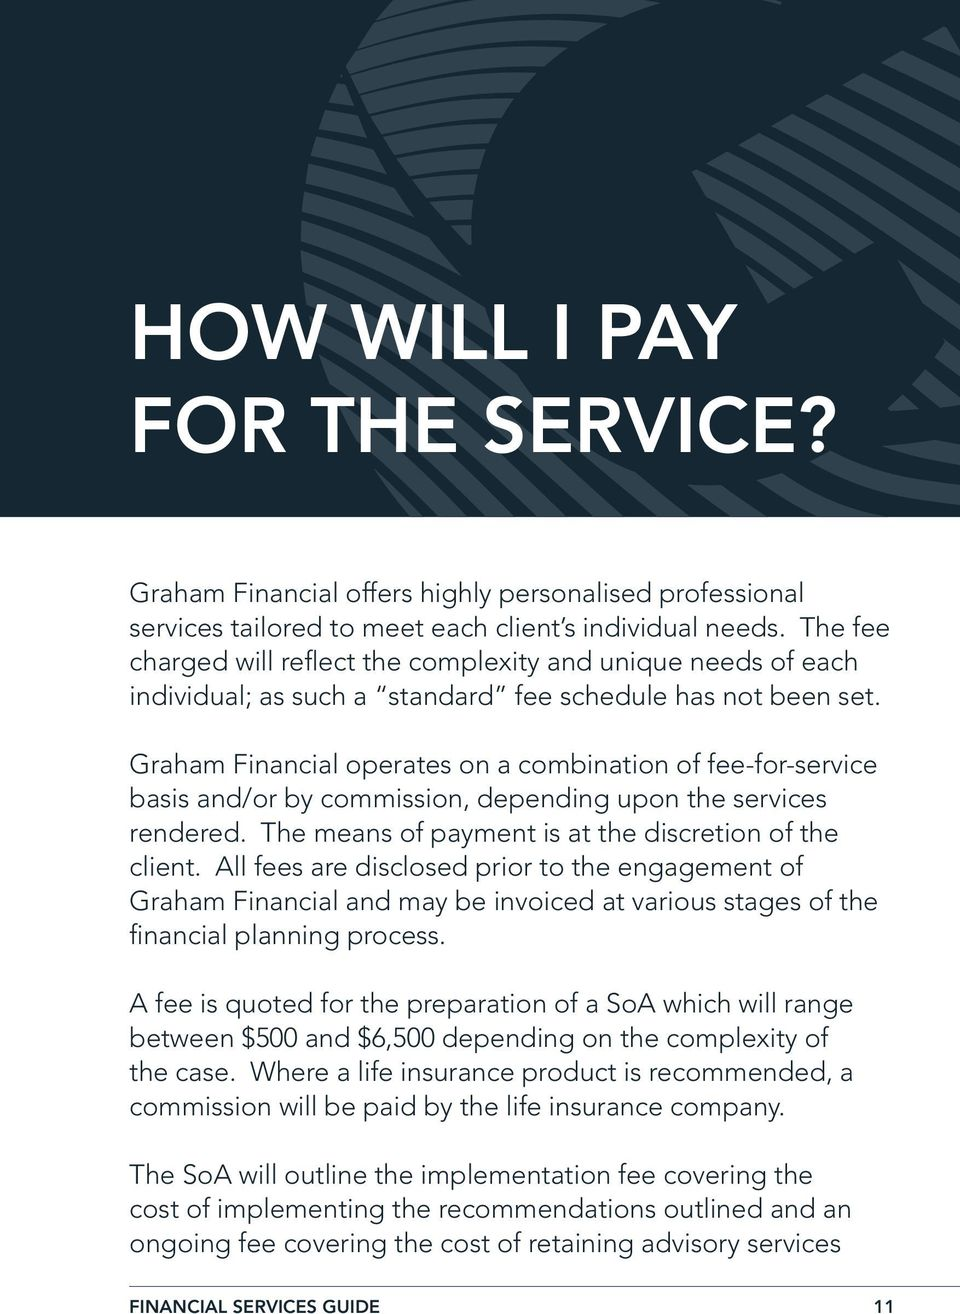 Graham Financial operates on a combination of fee-for-service basis and/or by commission, depending upon the services rendered. The means of payment is at the discretion of the client.